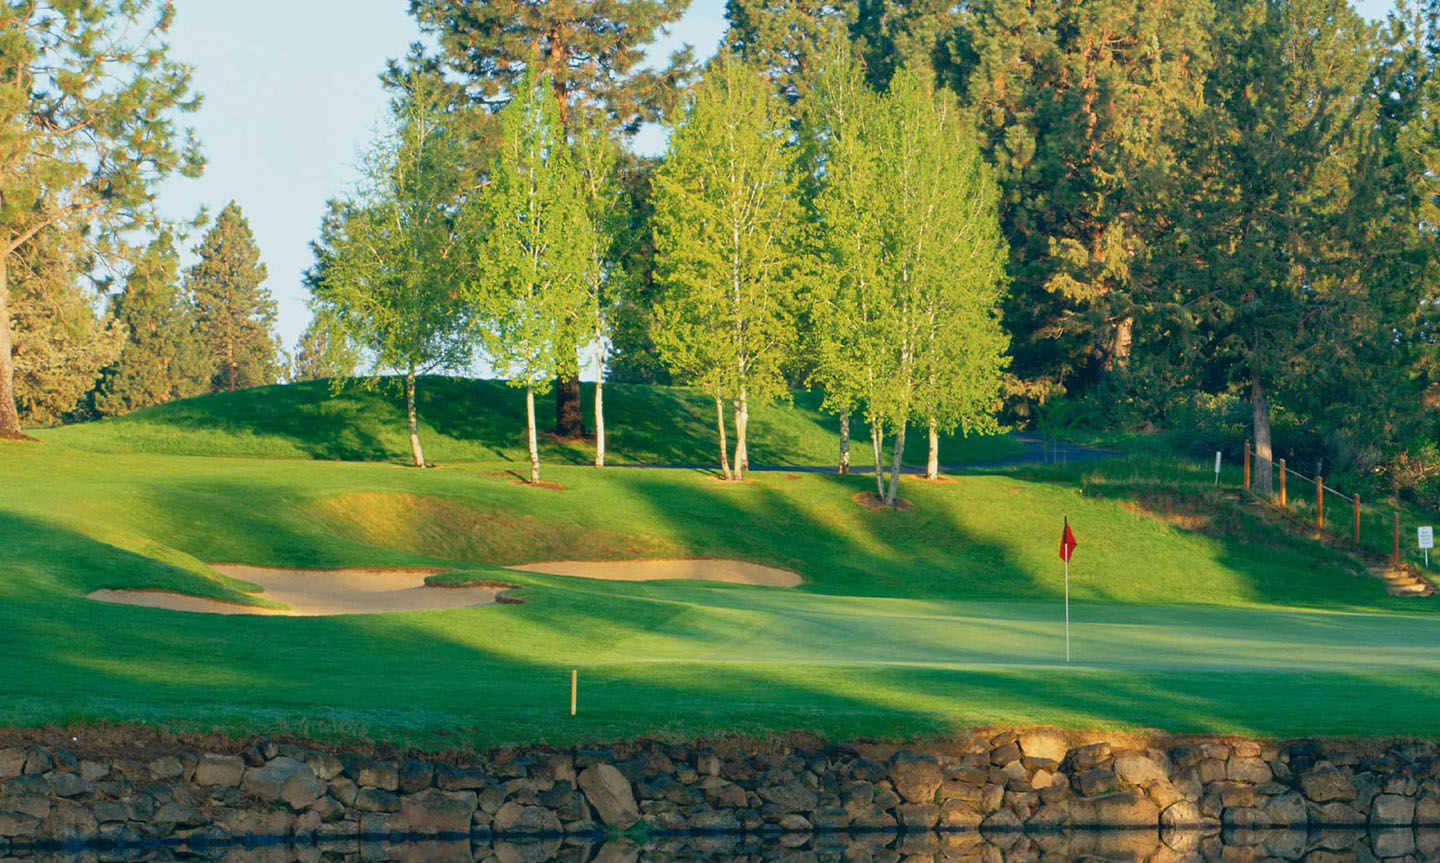 Bend golf and country club cover picture